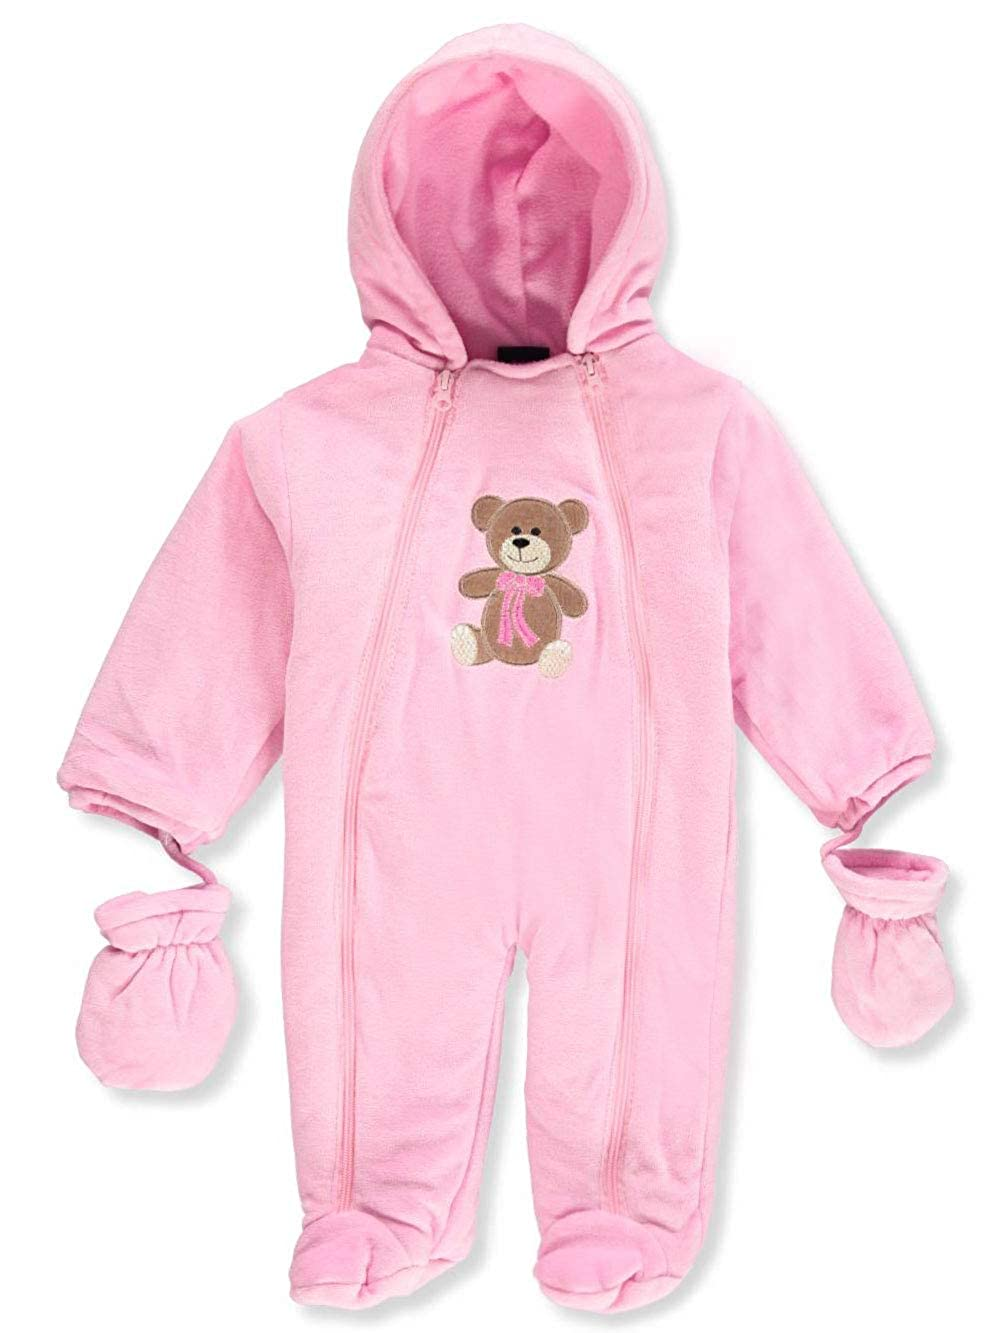 Sweet & Soft Baby Girls' Hooded Pram Suit with Mittens